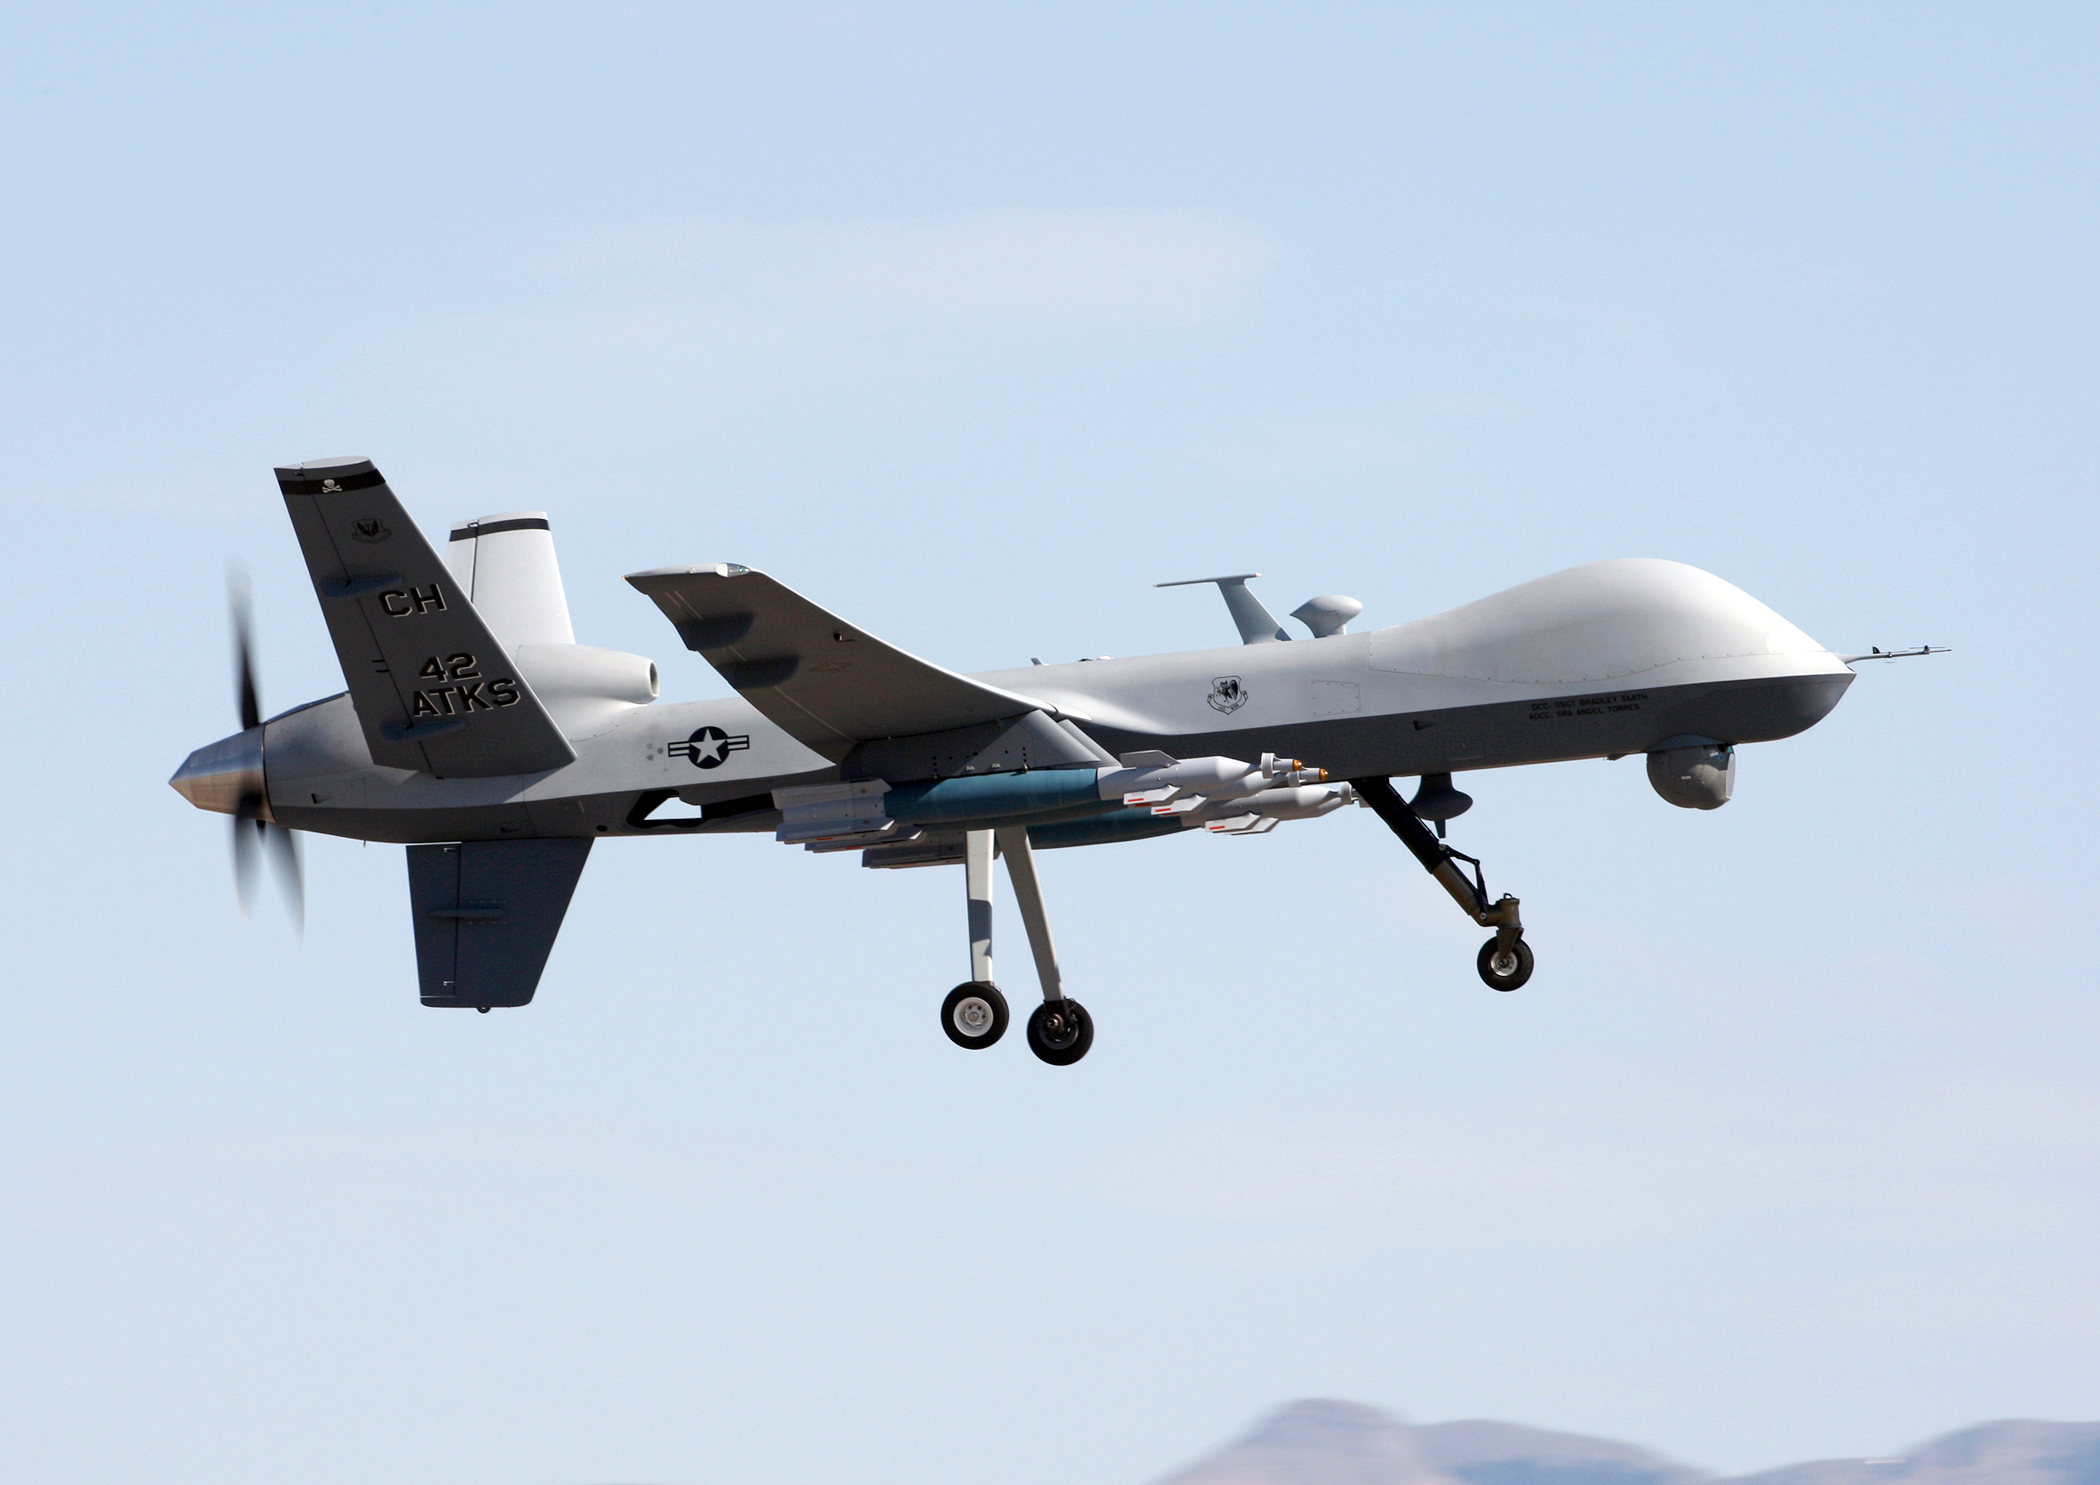 Face to face: Should the Canadian Armed Forces purchase armed drones?